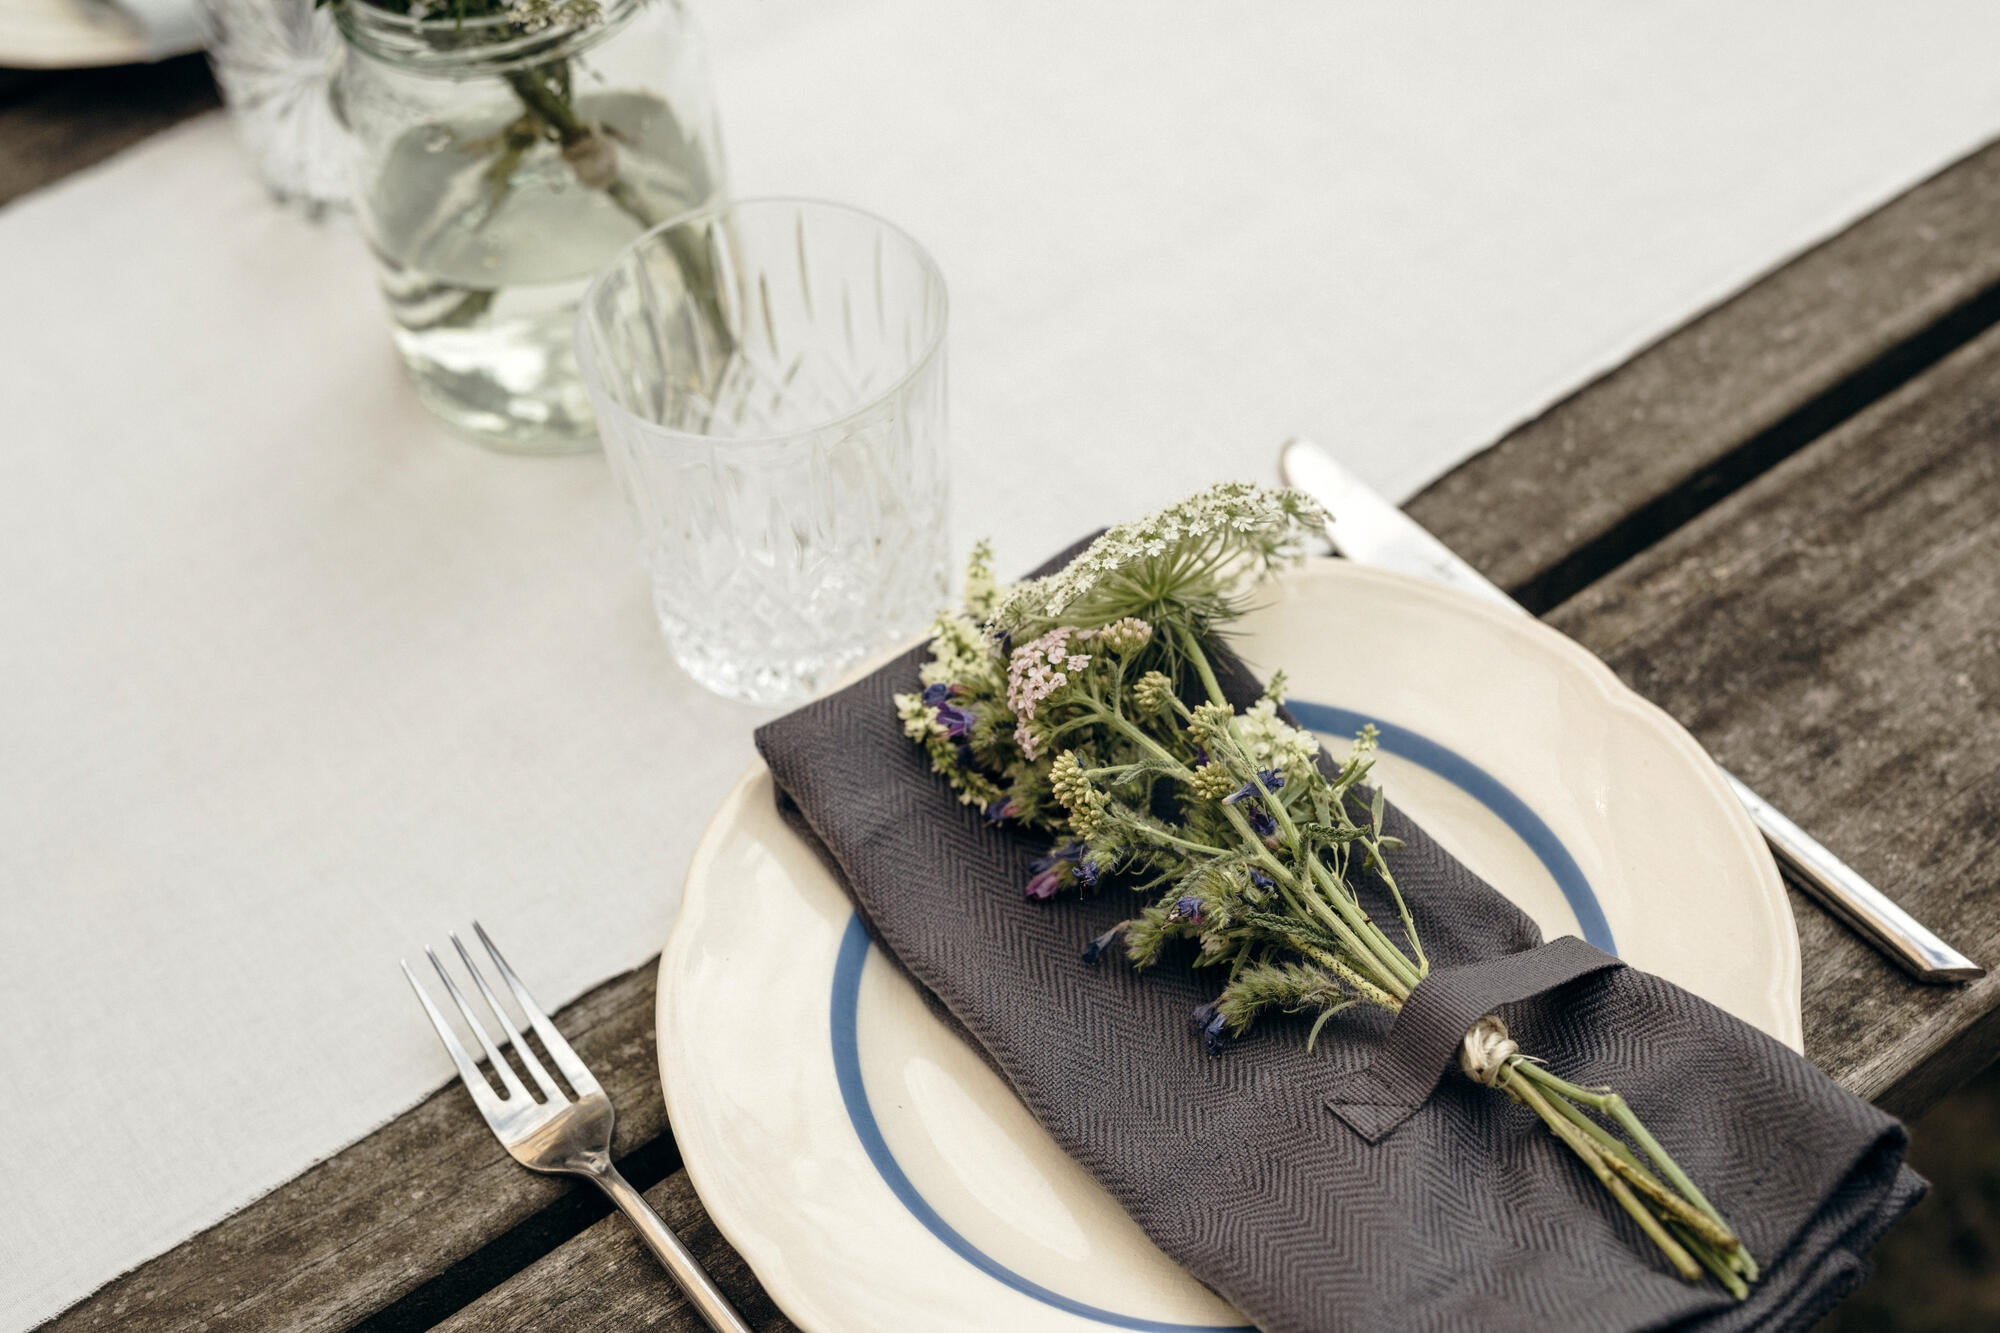 Table laid with grey napkin and flowers, pretty water jug